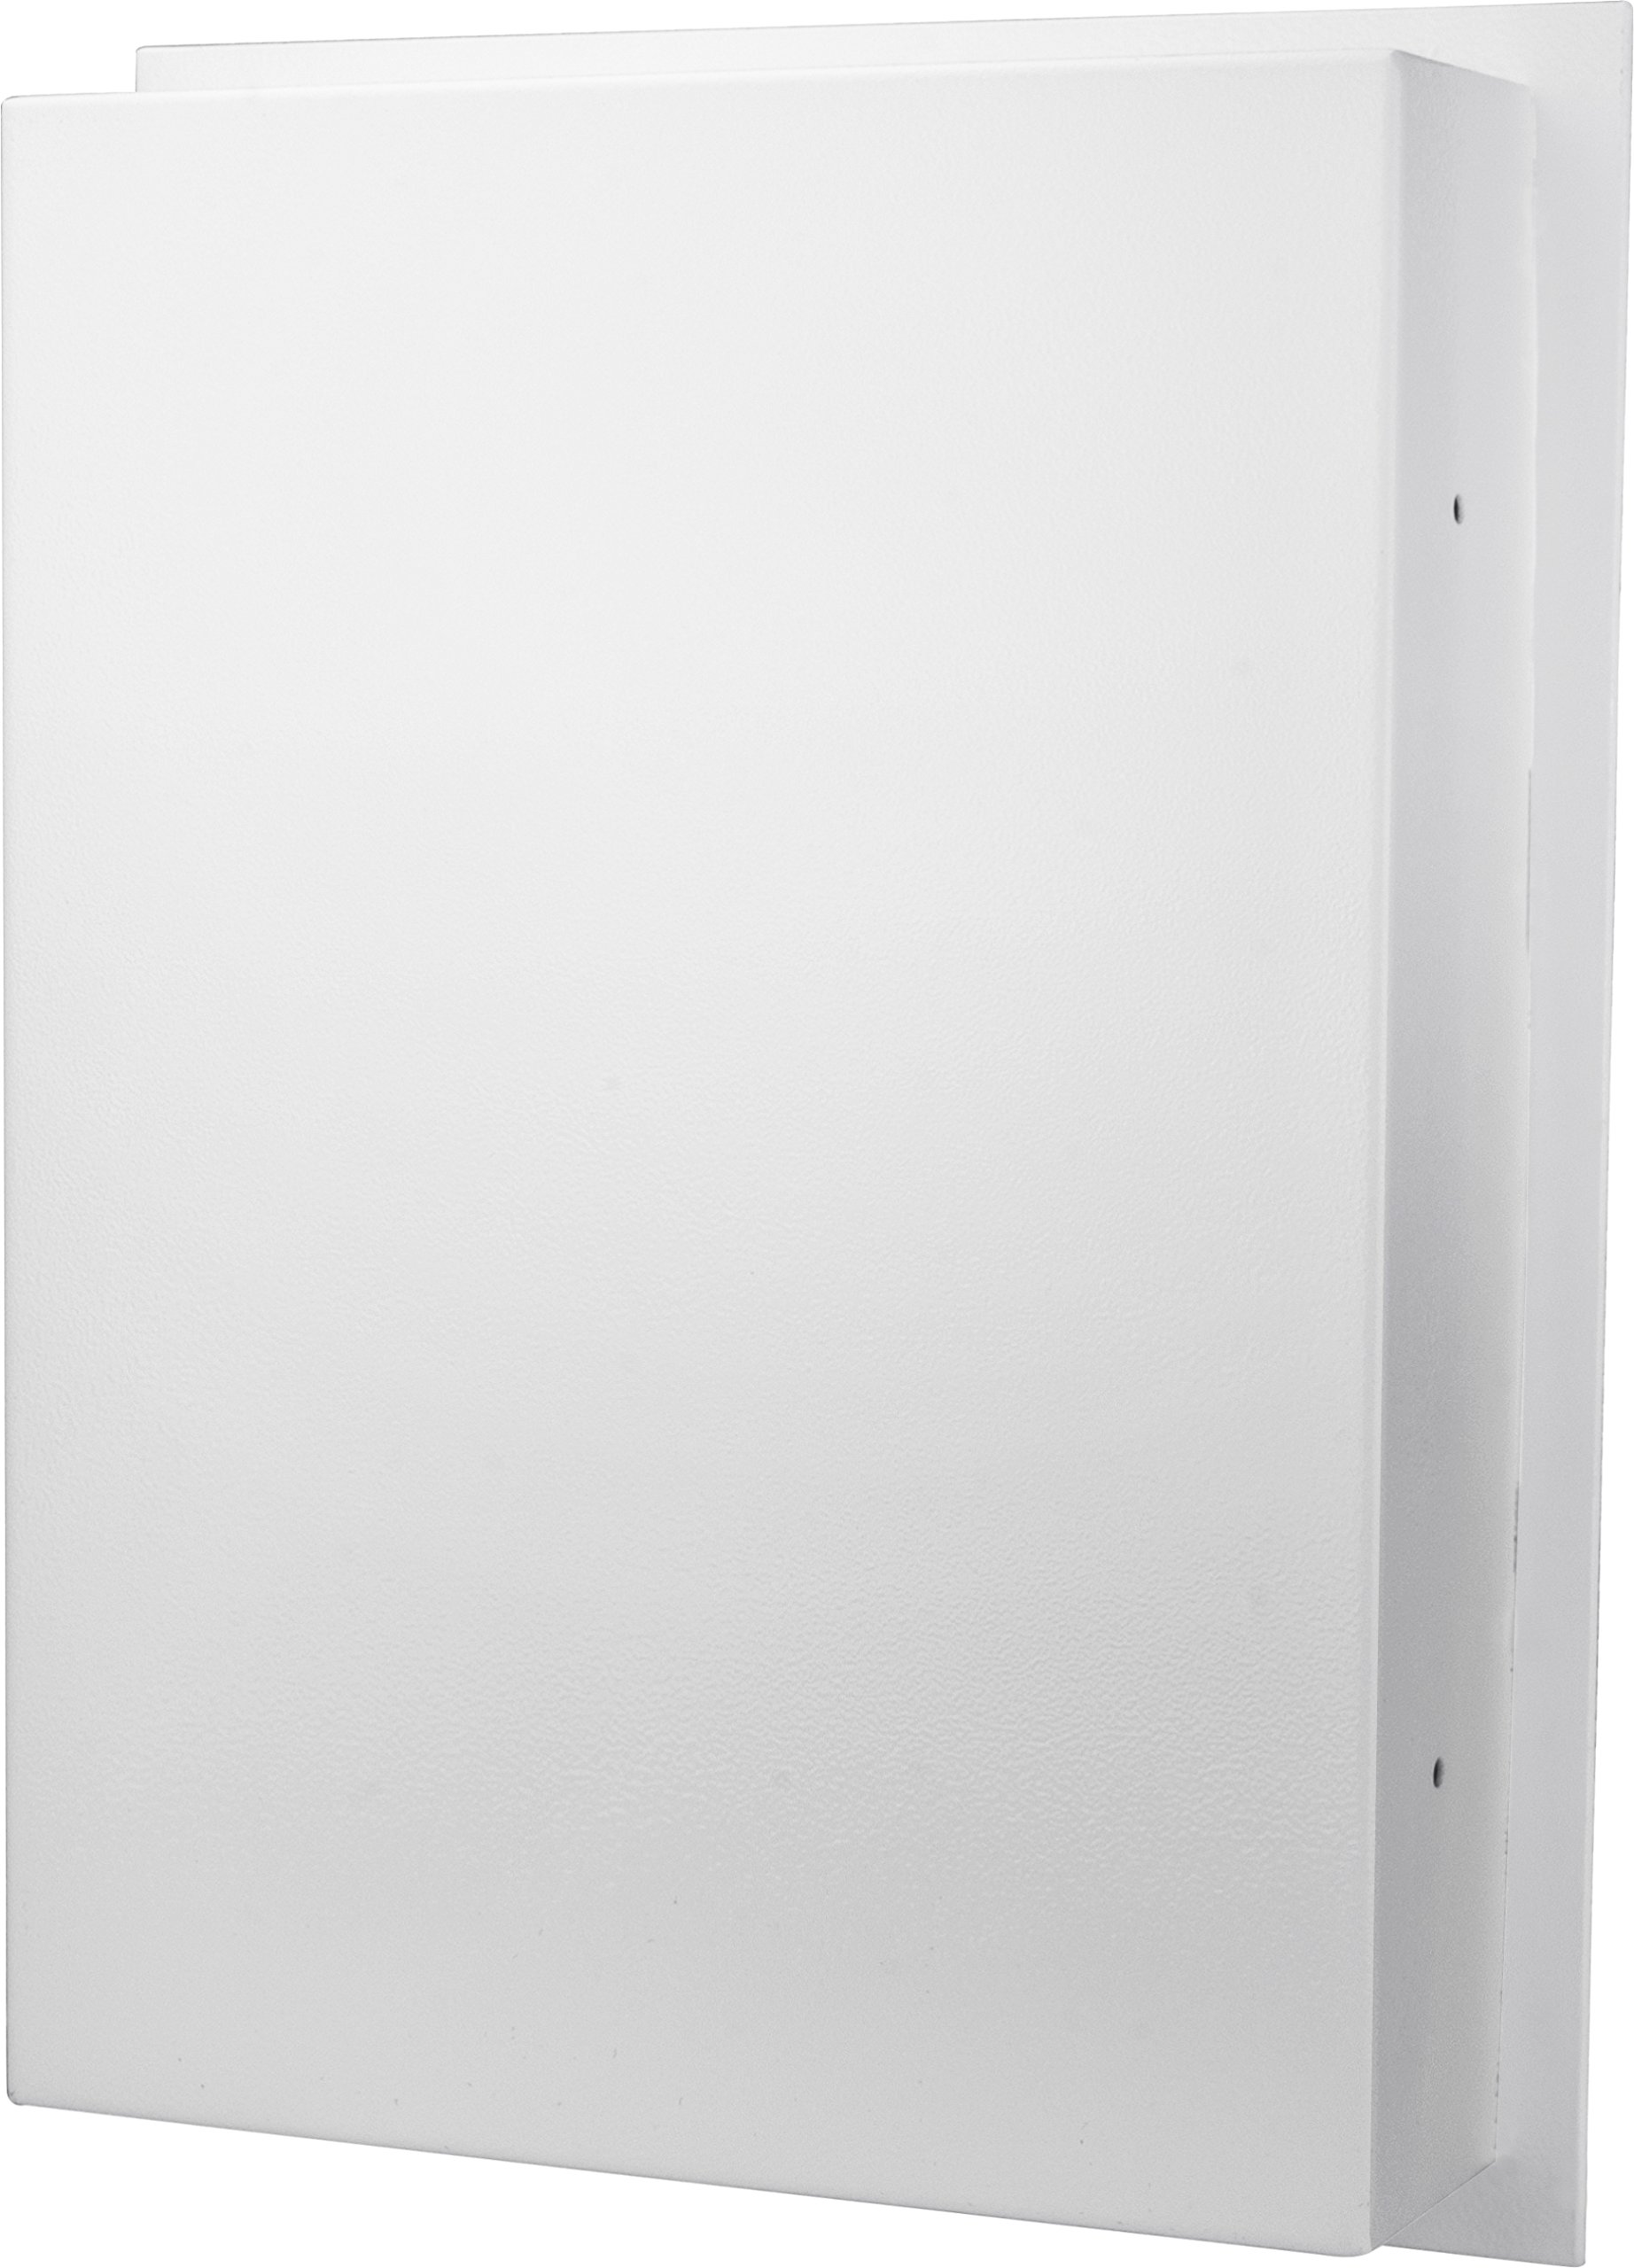 Barska Biometric Wall Safe, White by BARSKA (Image #2)